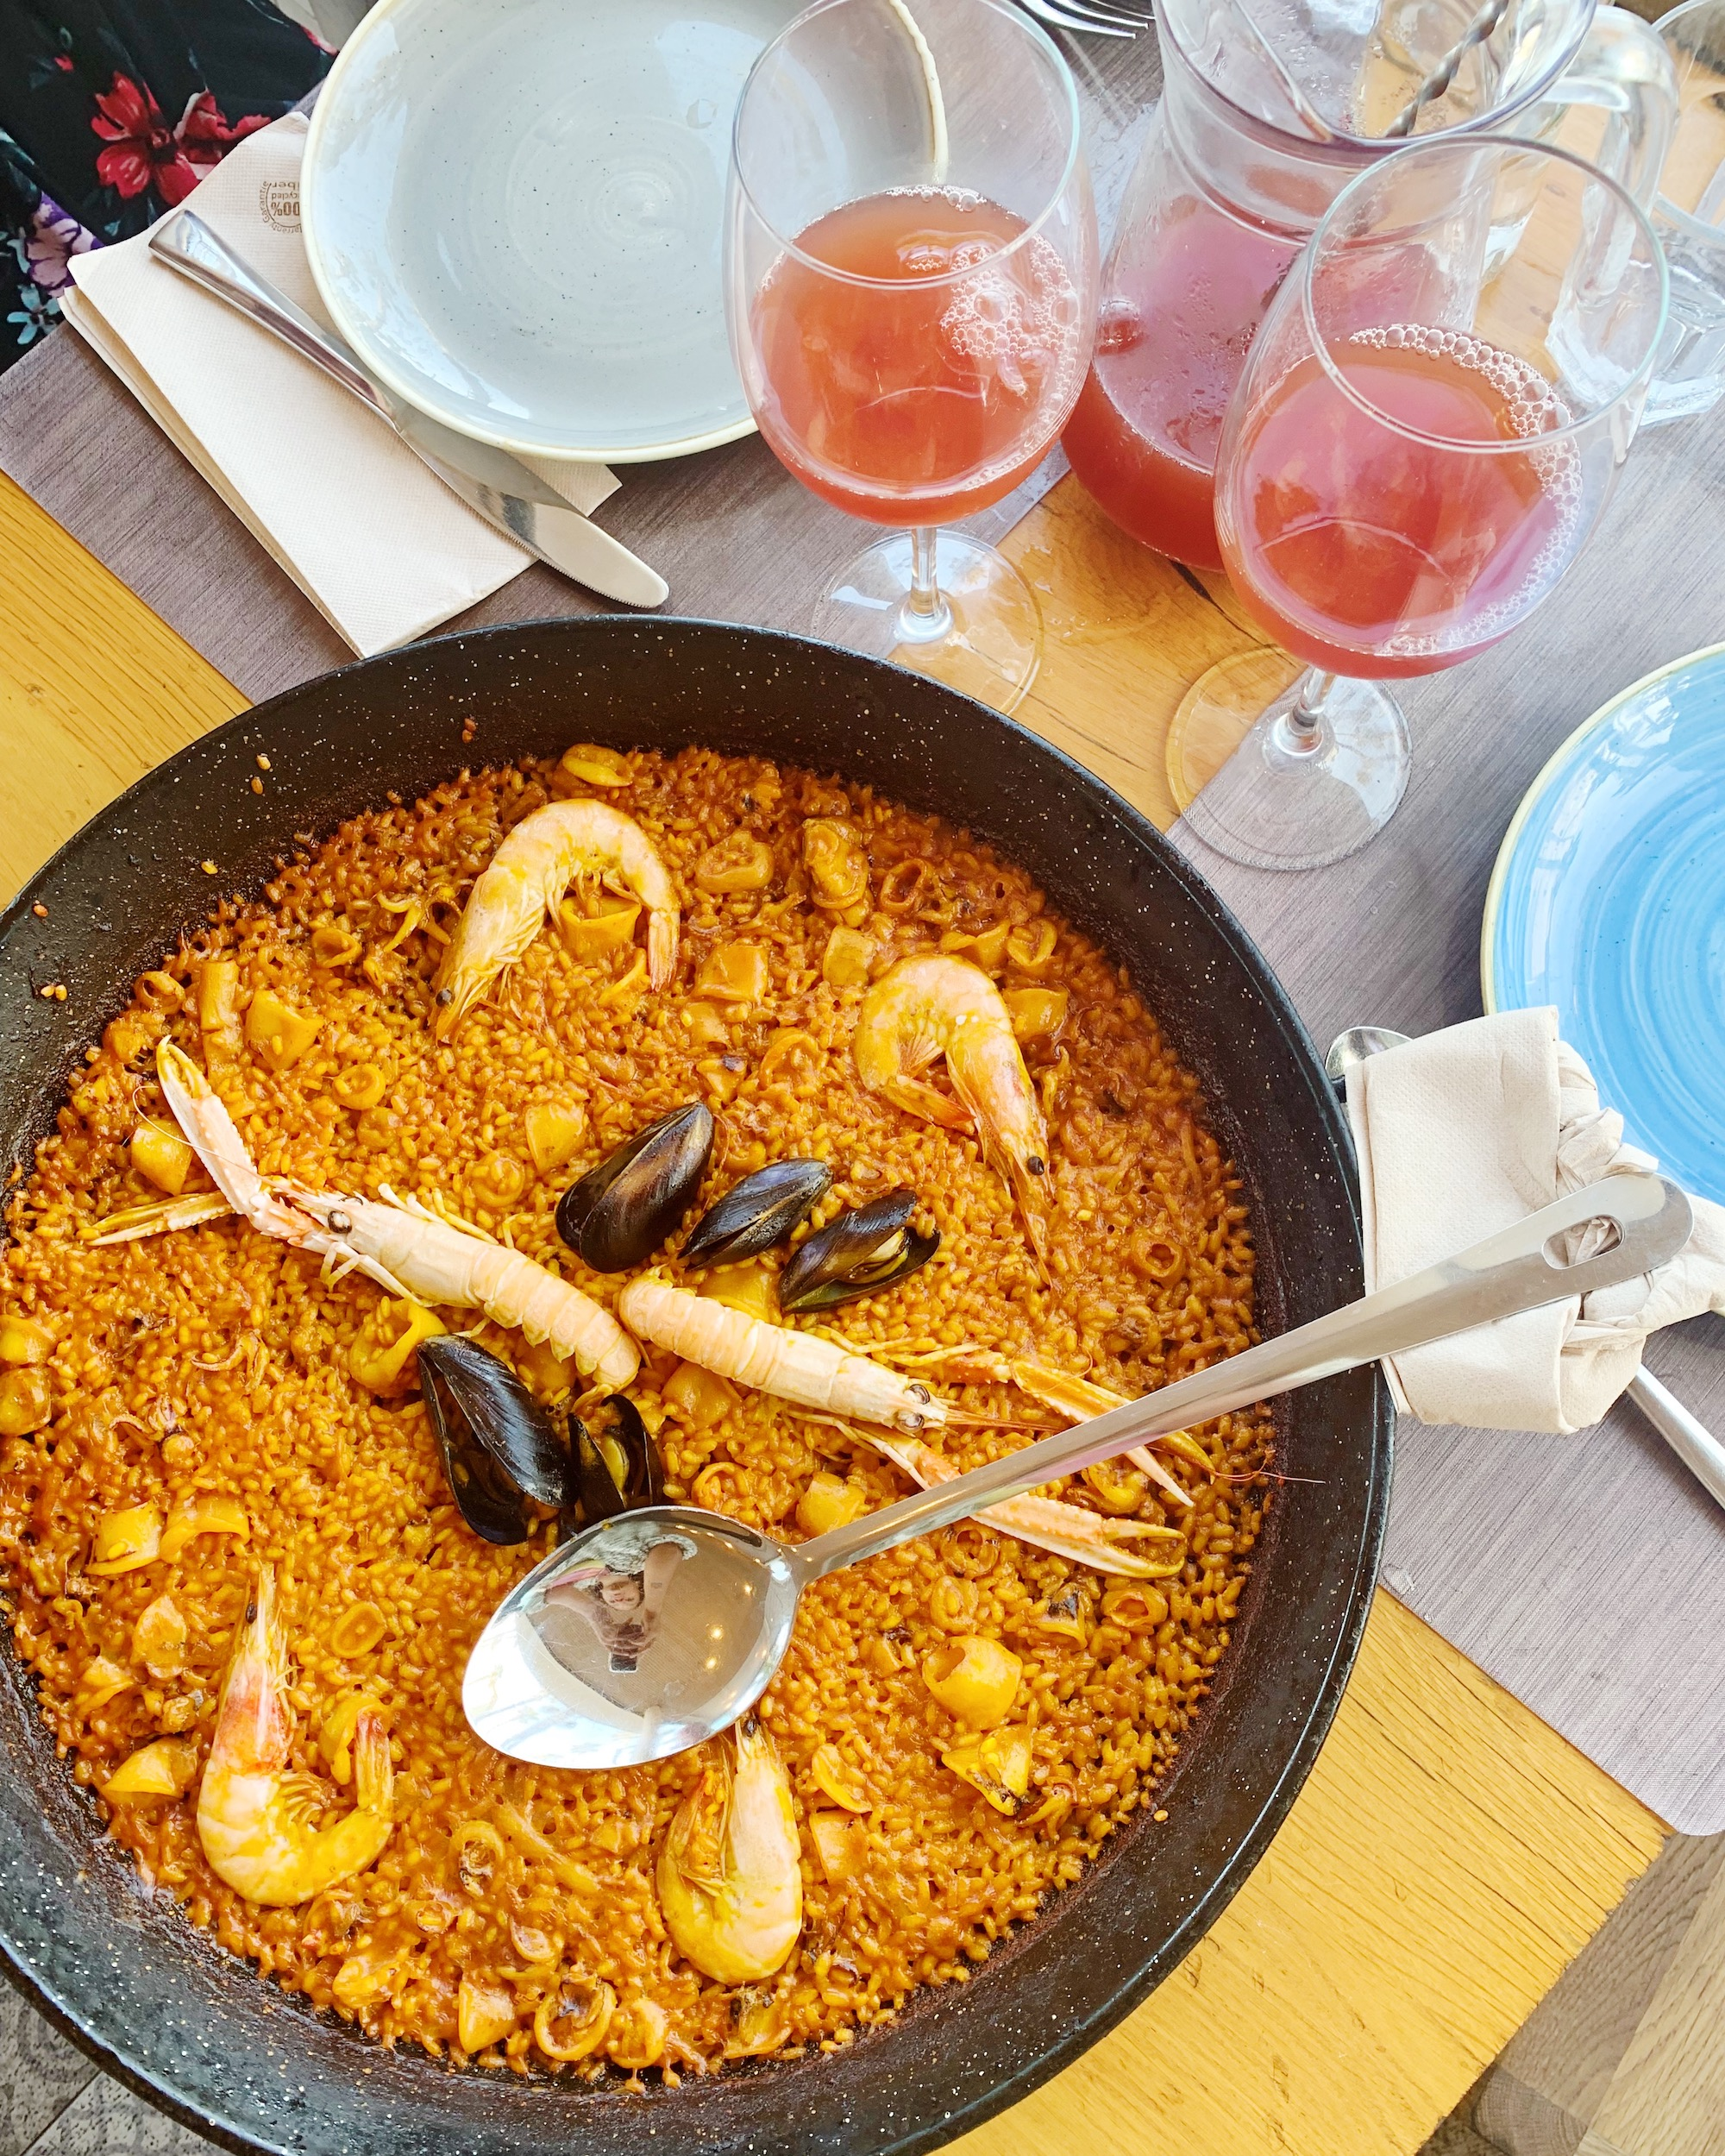 Paella at Portolito